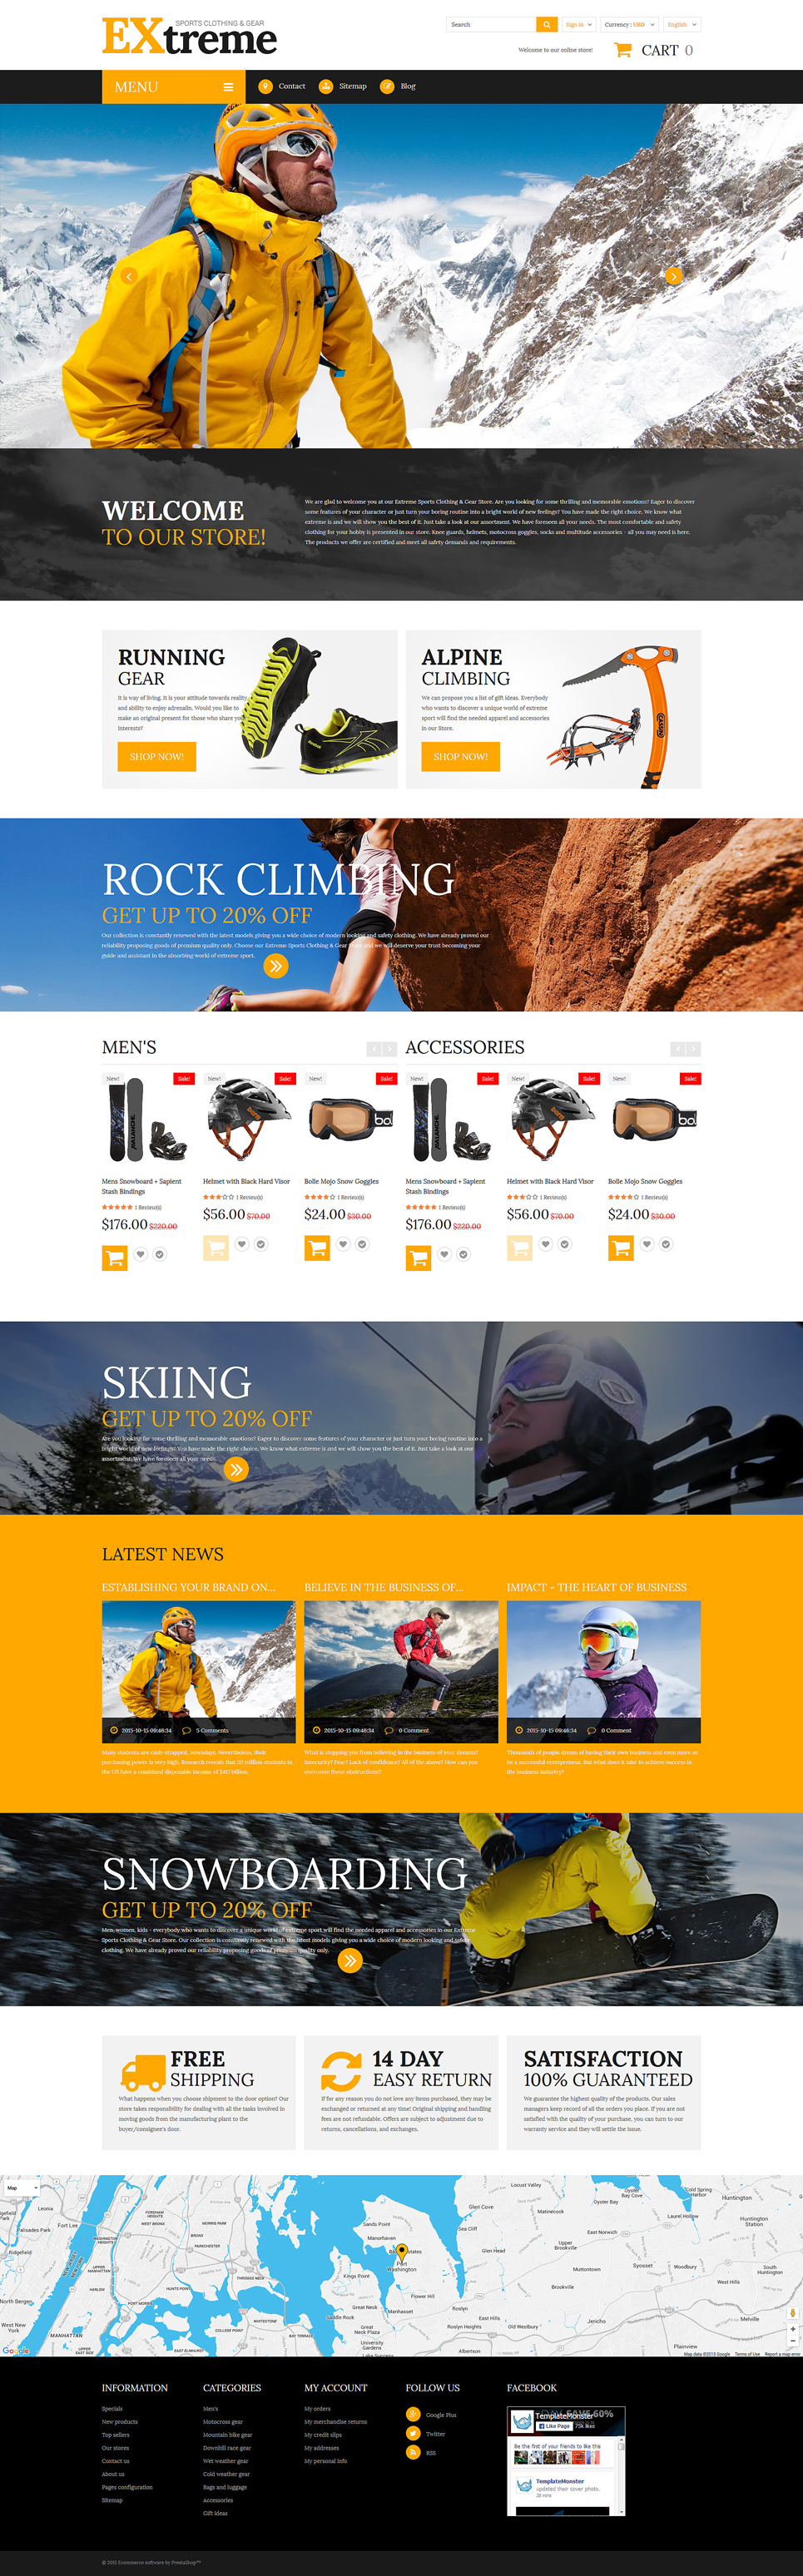 Extreme Sports Clothing Shop